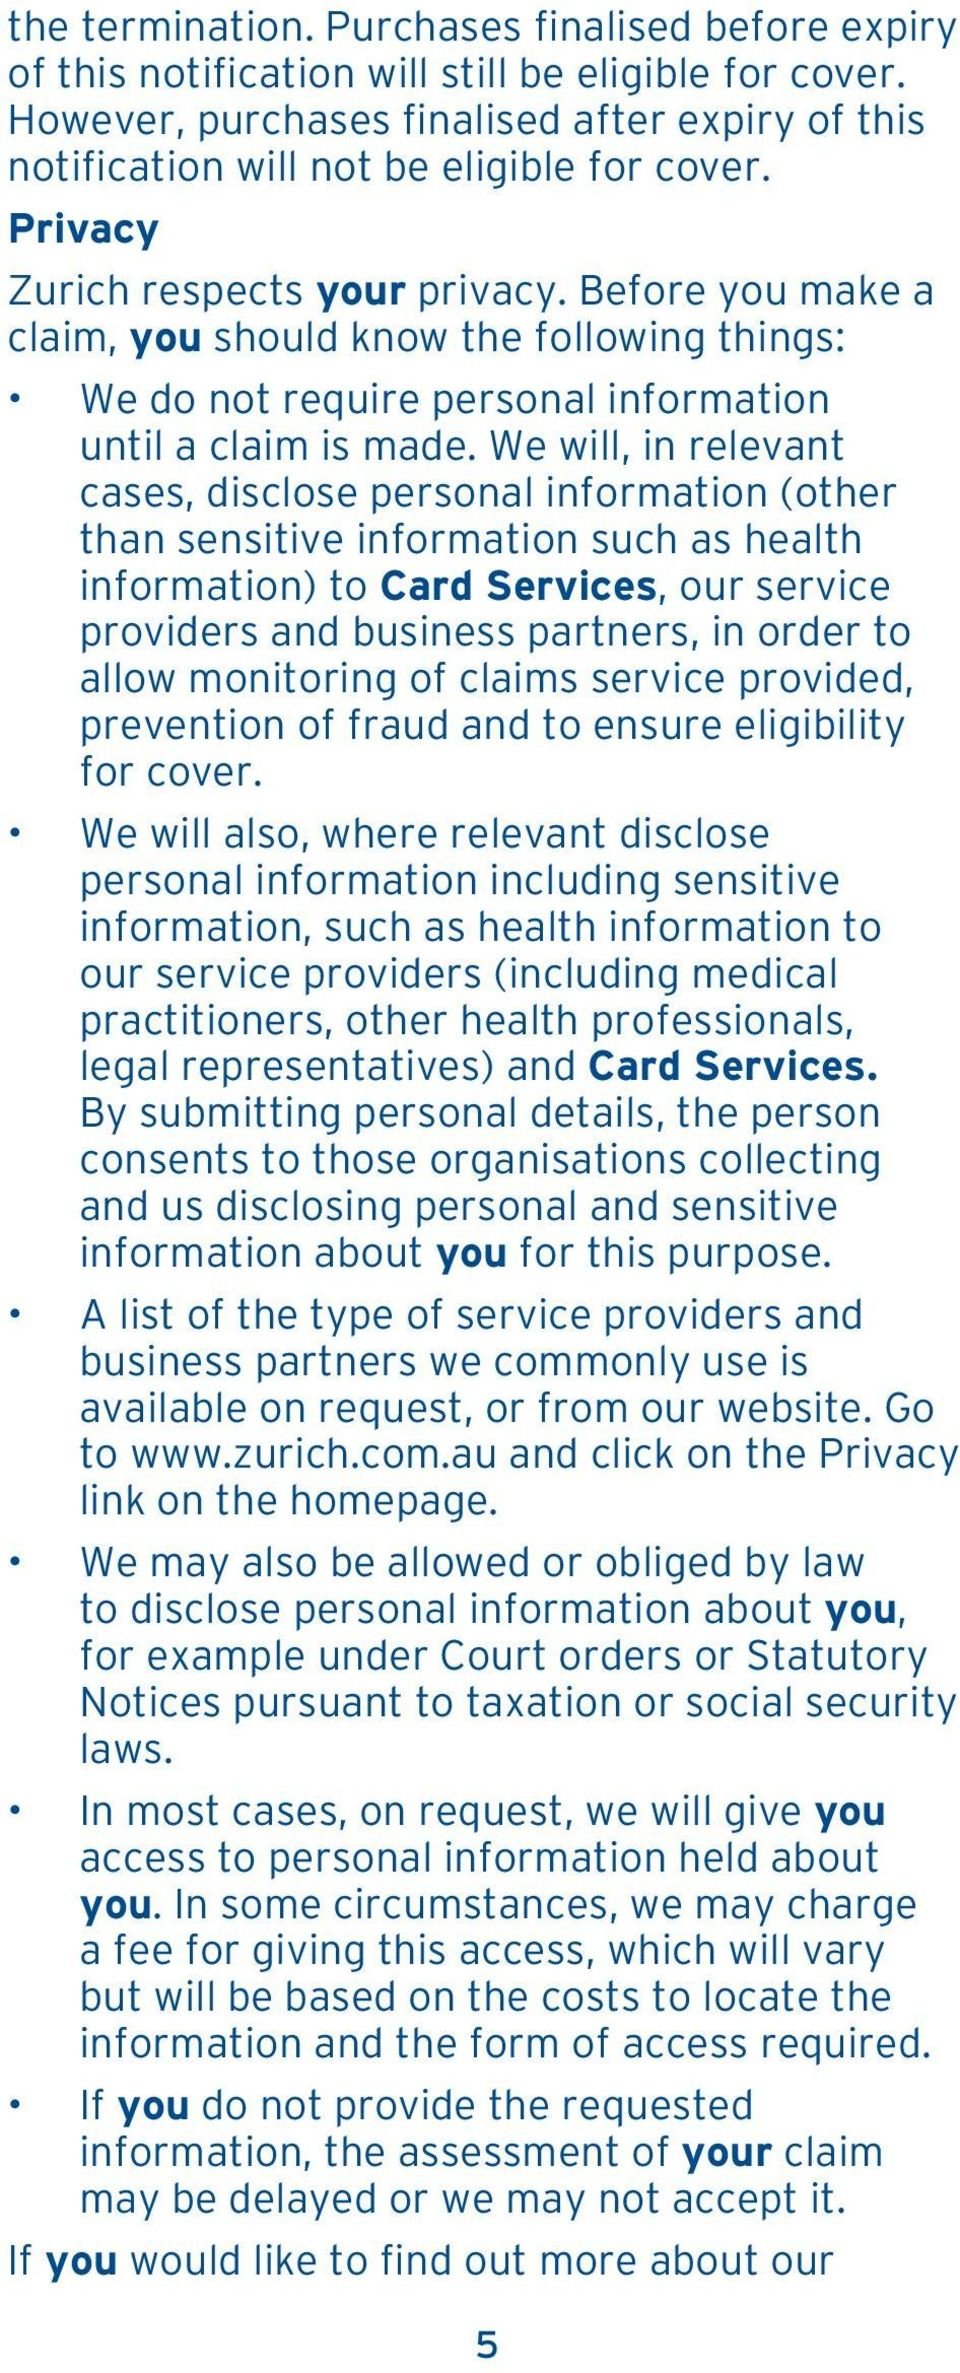 We will, in relevant cases, disclose personal information (other than sensitive information such as health information) to Card Services, our service providers and business partners, in order to